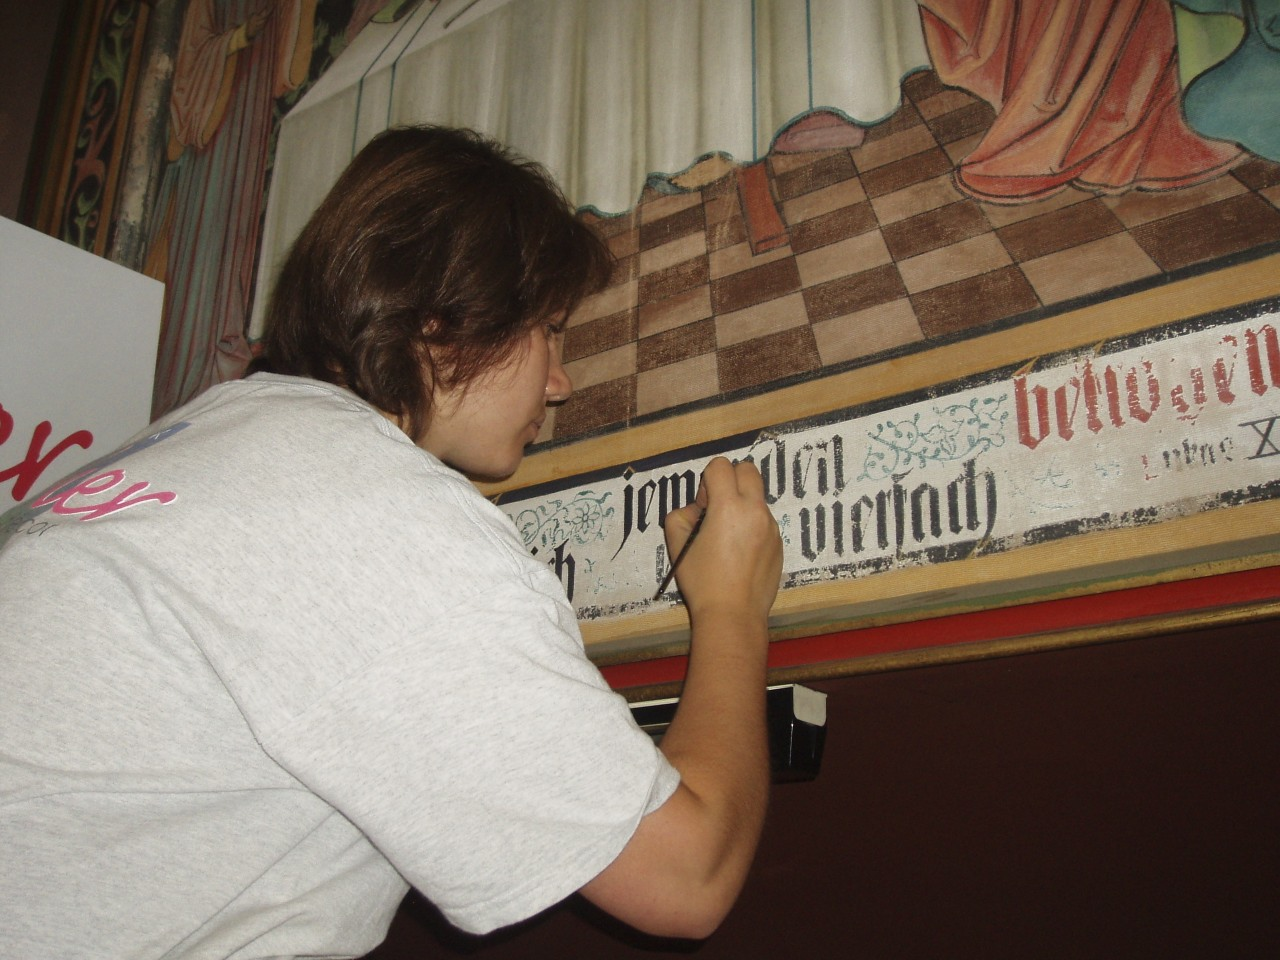 Lettering restoration in progress